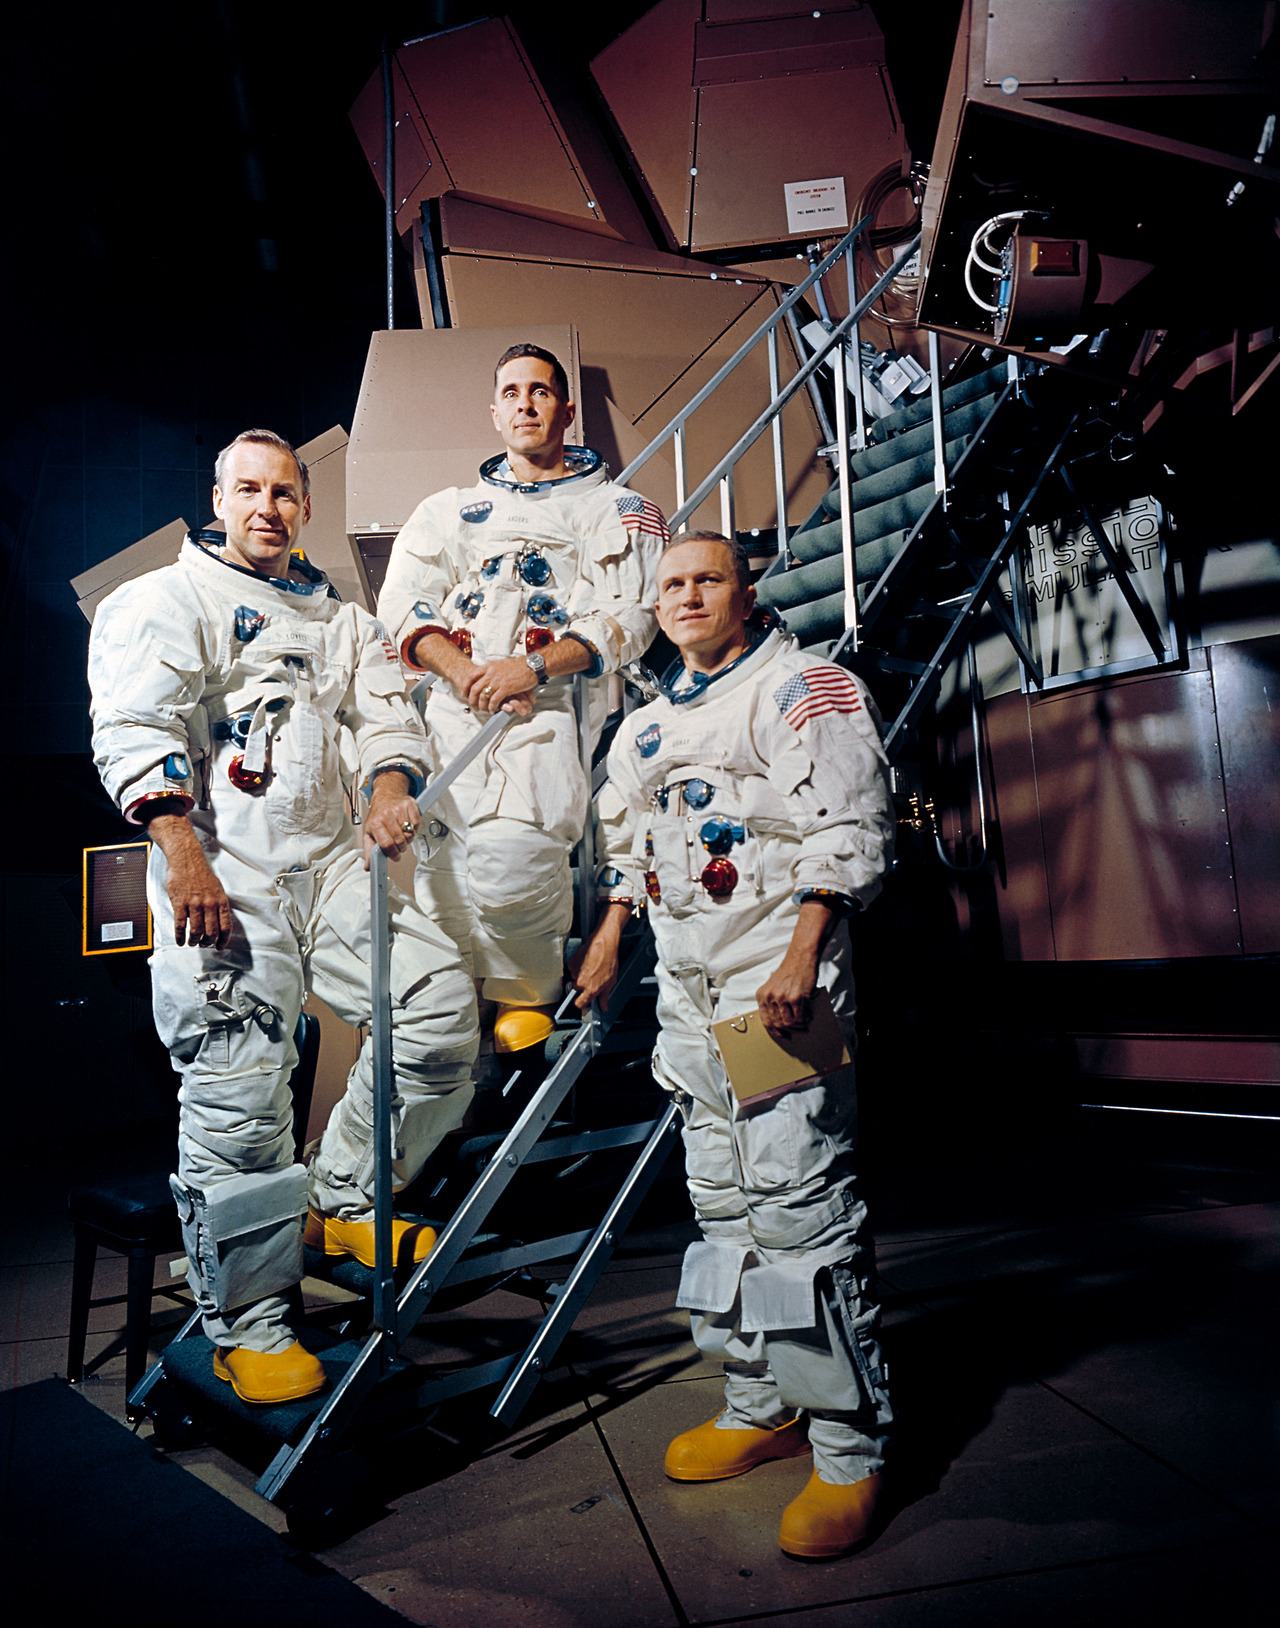 [PHOTO] Apollo 8 Astronauts Jim Lovell, William Anders ...